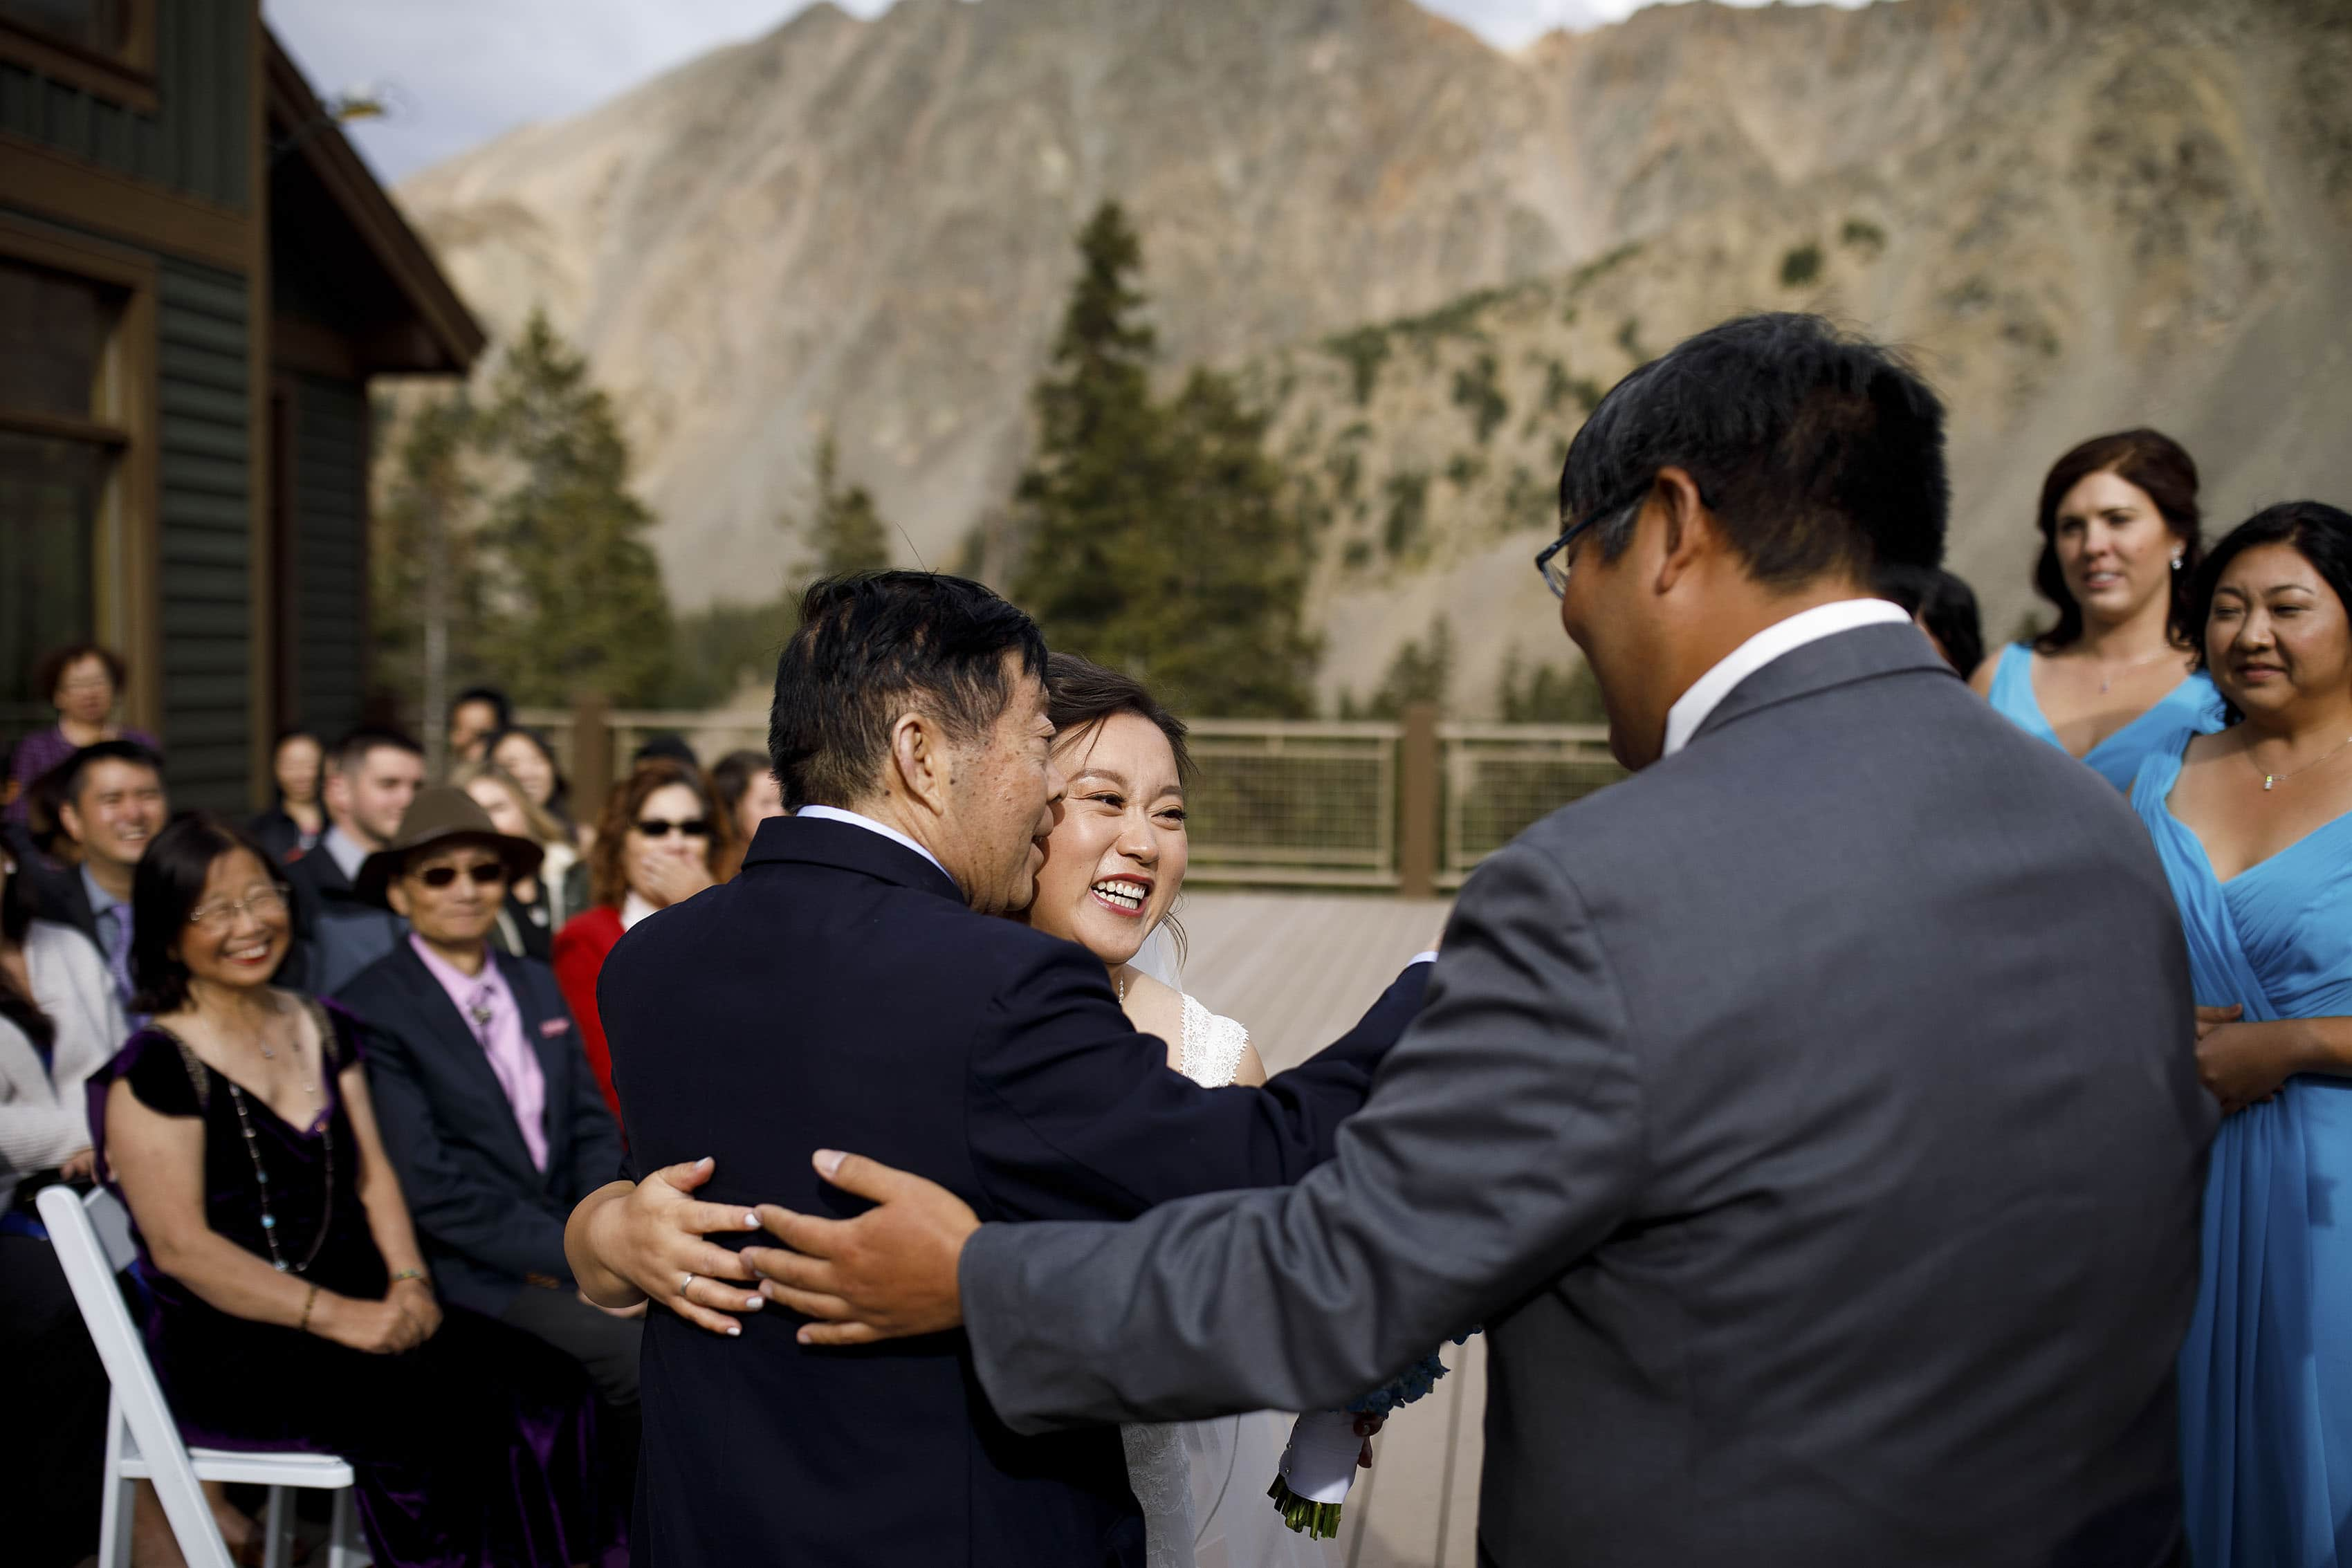 Xinya hugs her father during the wedding ceremony